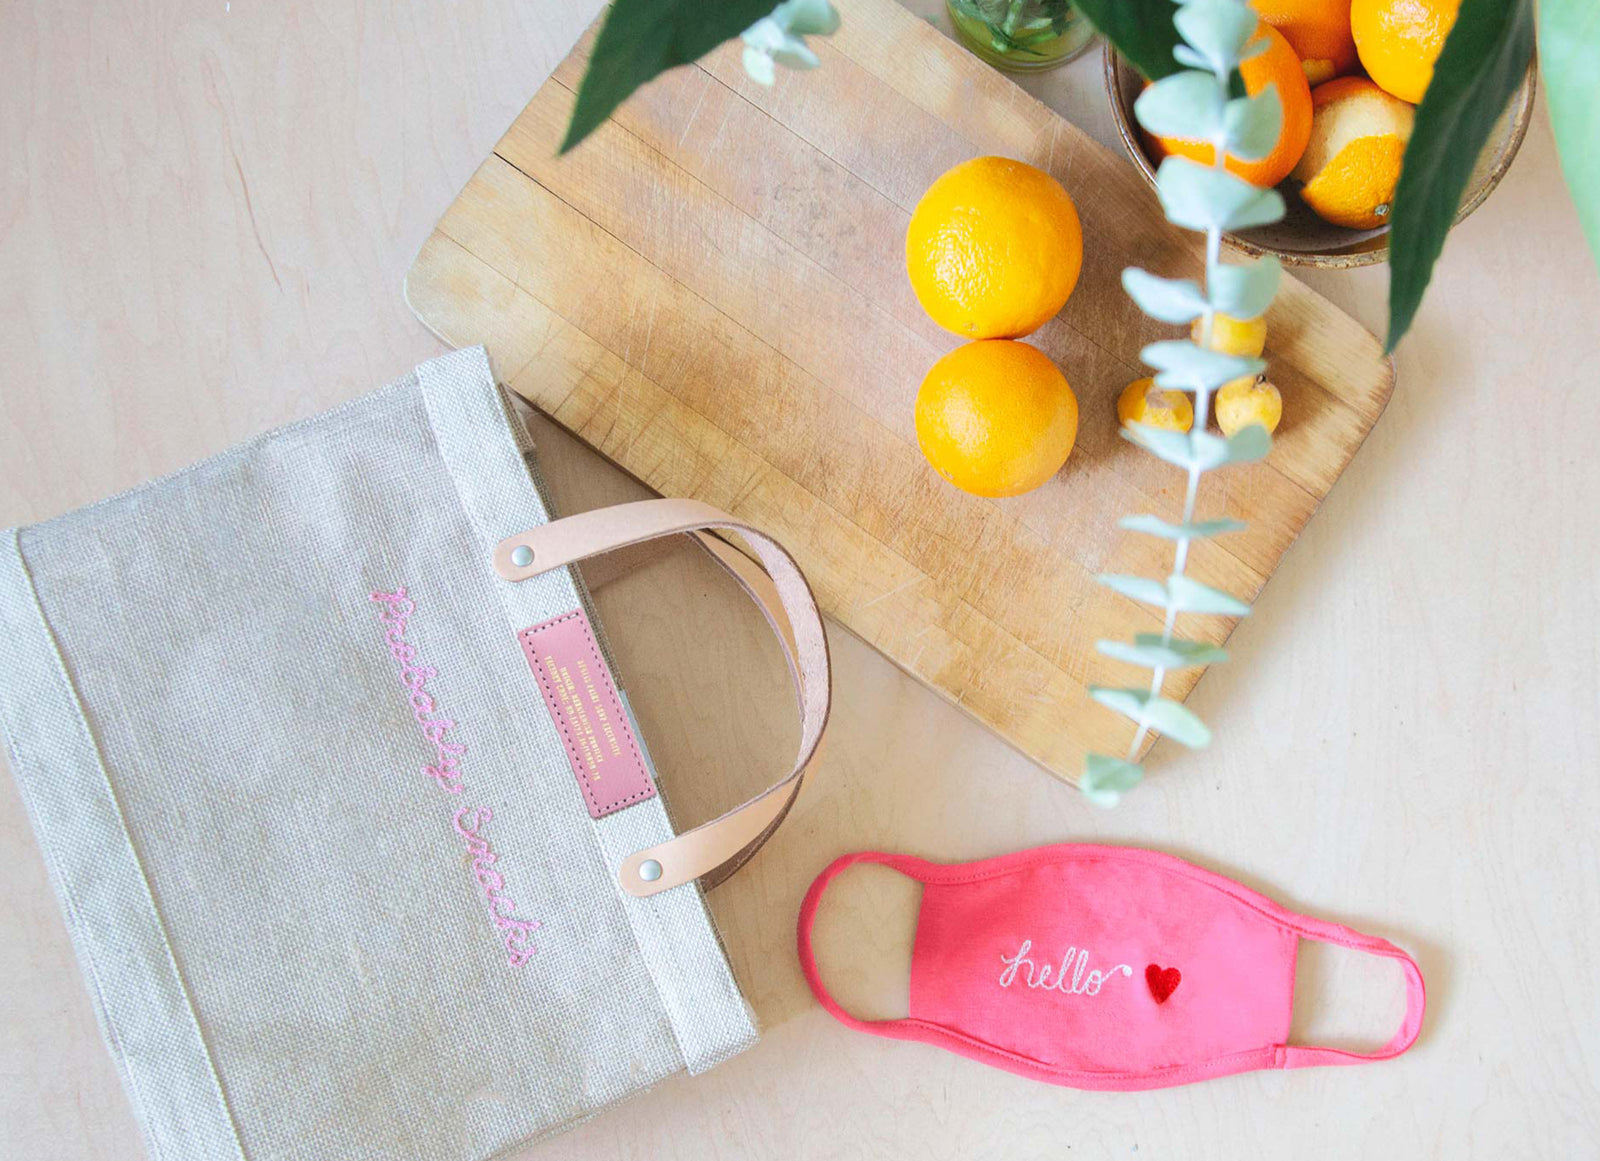 Customizable Embroidered Petite Market Bag with Pink Stitch | Gold Foil Print Shop Exclusive